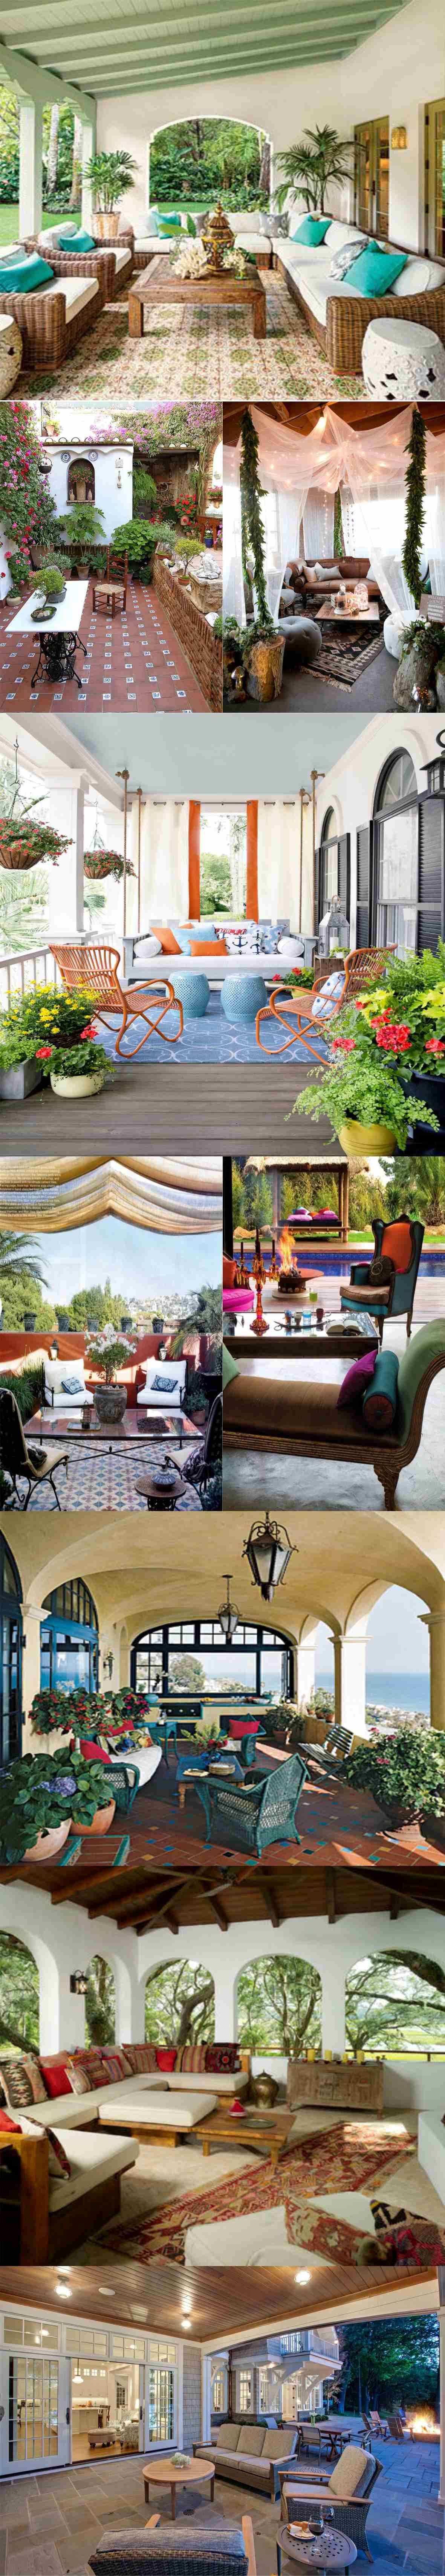 Patio ideas for style living 2018